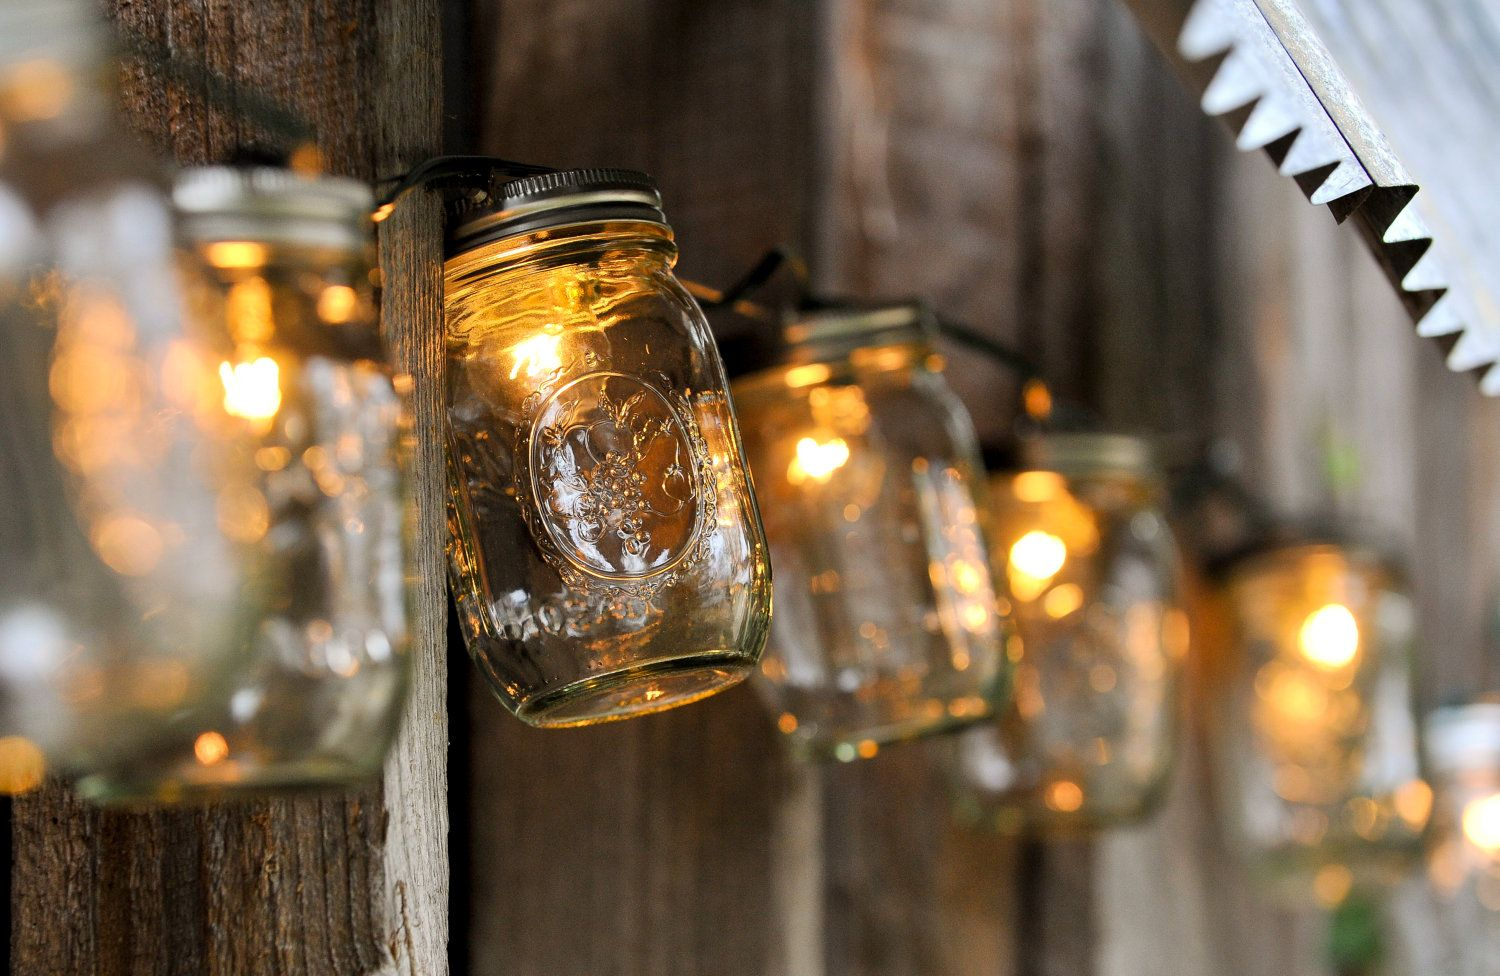 5 Great Outdoor Mason Jar Lighting Projects The Garden Glove Mason Jar Diy Mason Jar Lighting Jar Lights